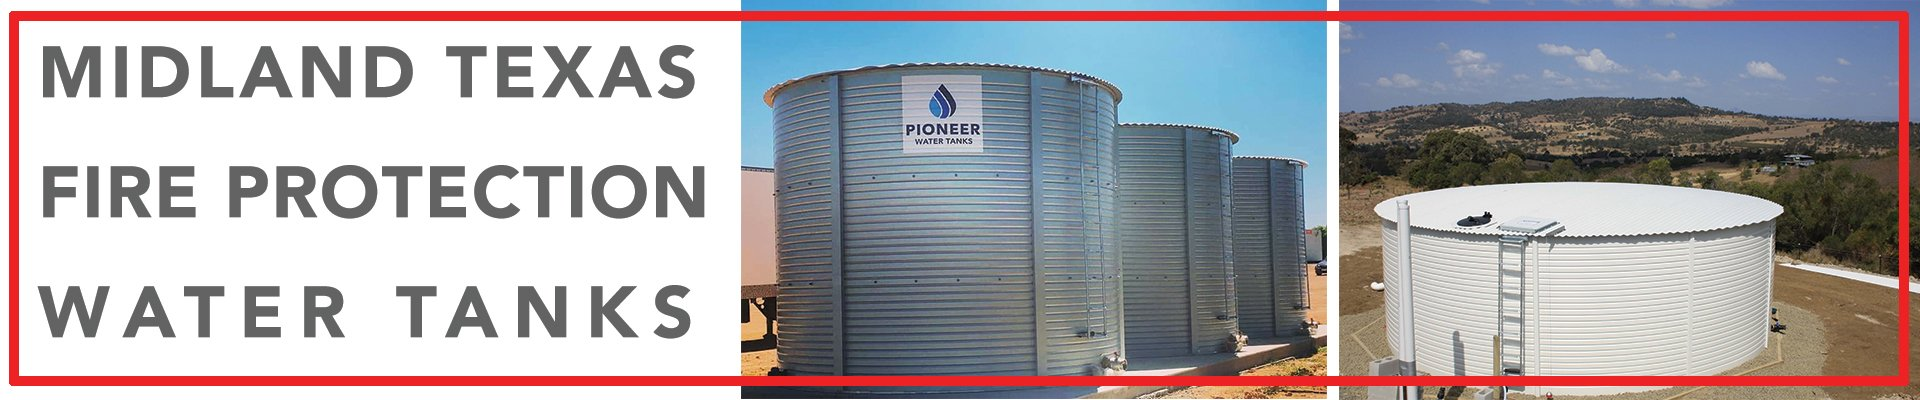 Midland Texas Fire Protection Water Tanks